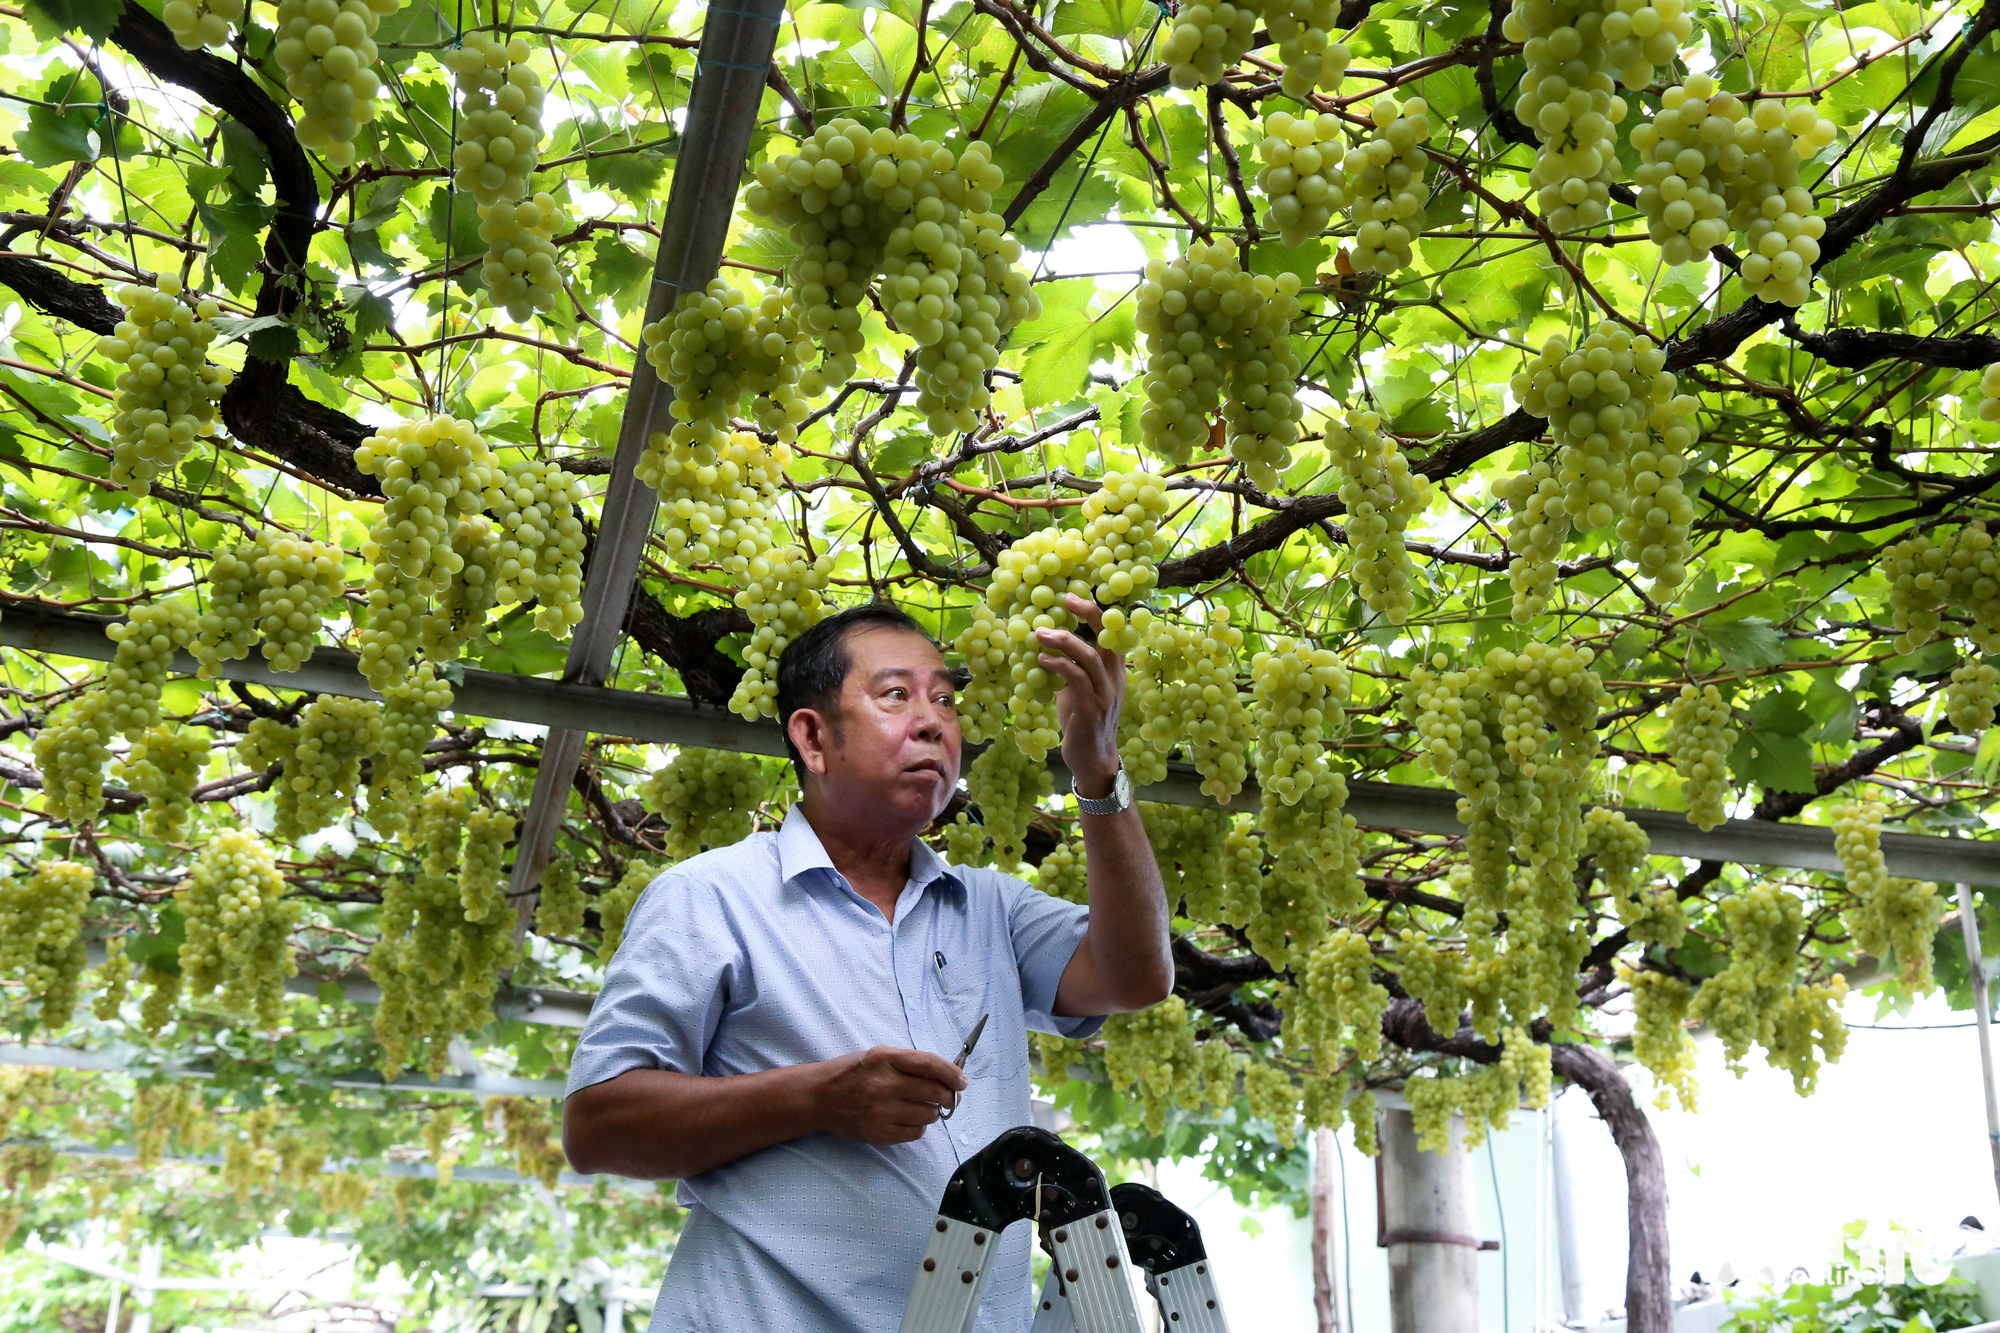 Ho Chi Minh City man's fruit-laden grapevines inspire home gardening trend